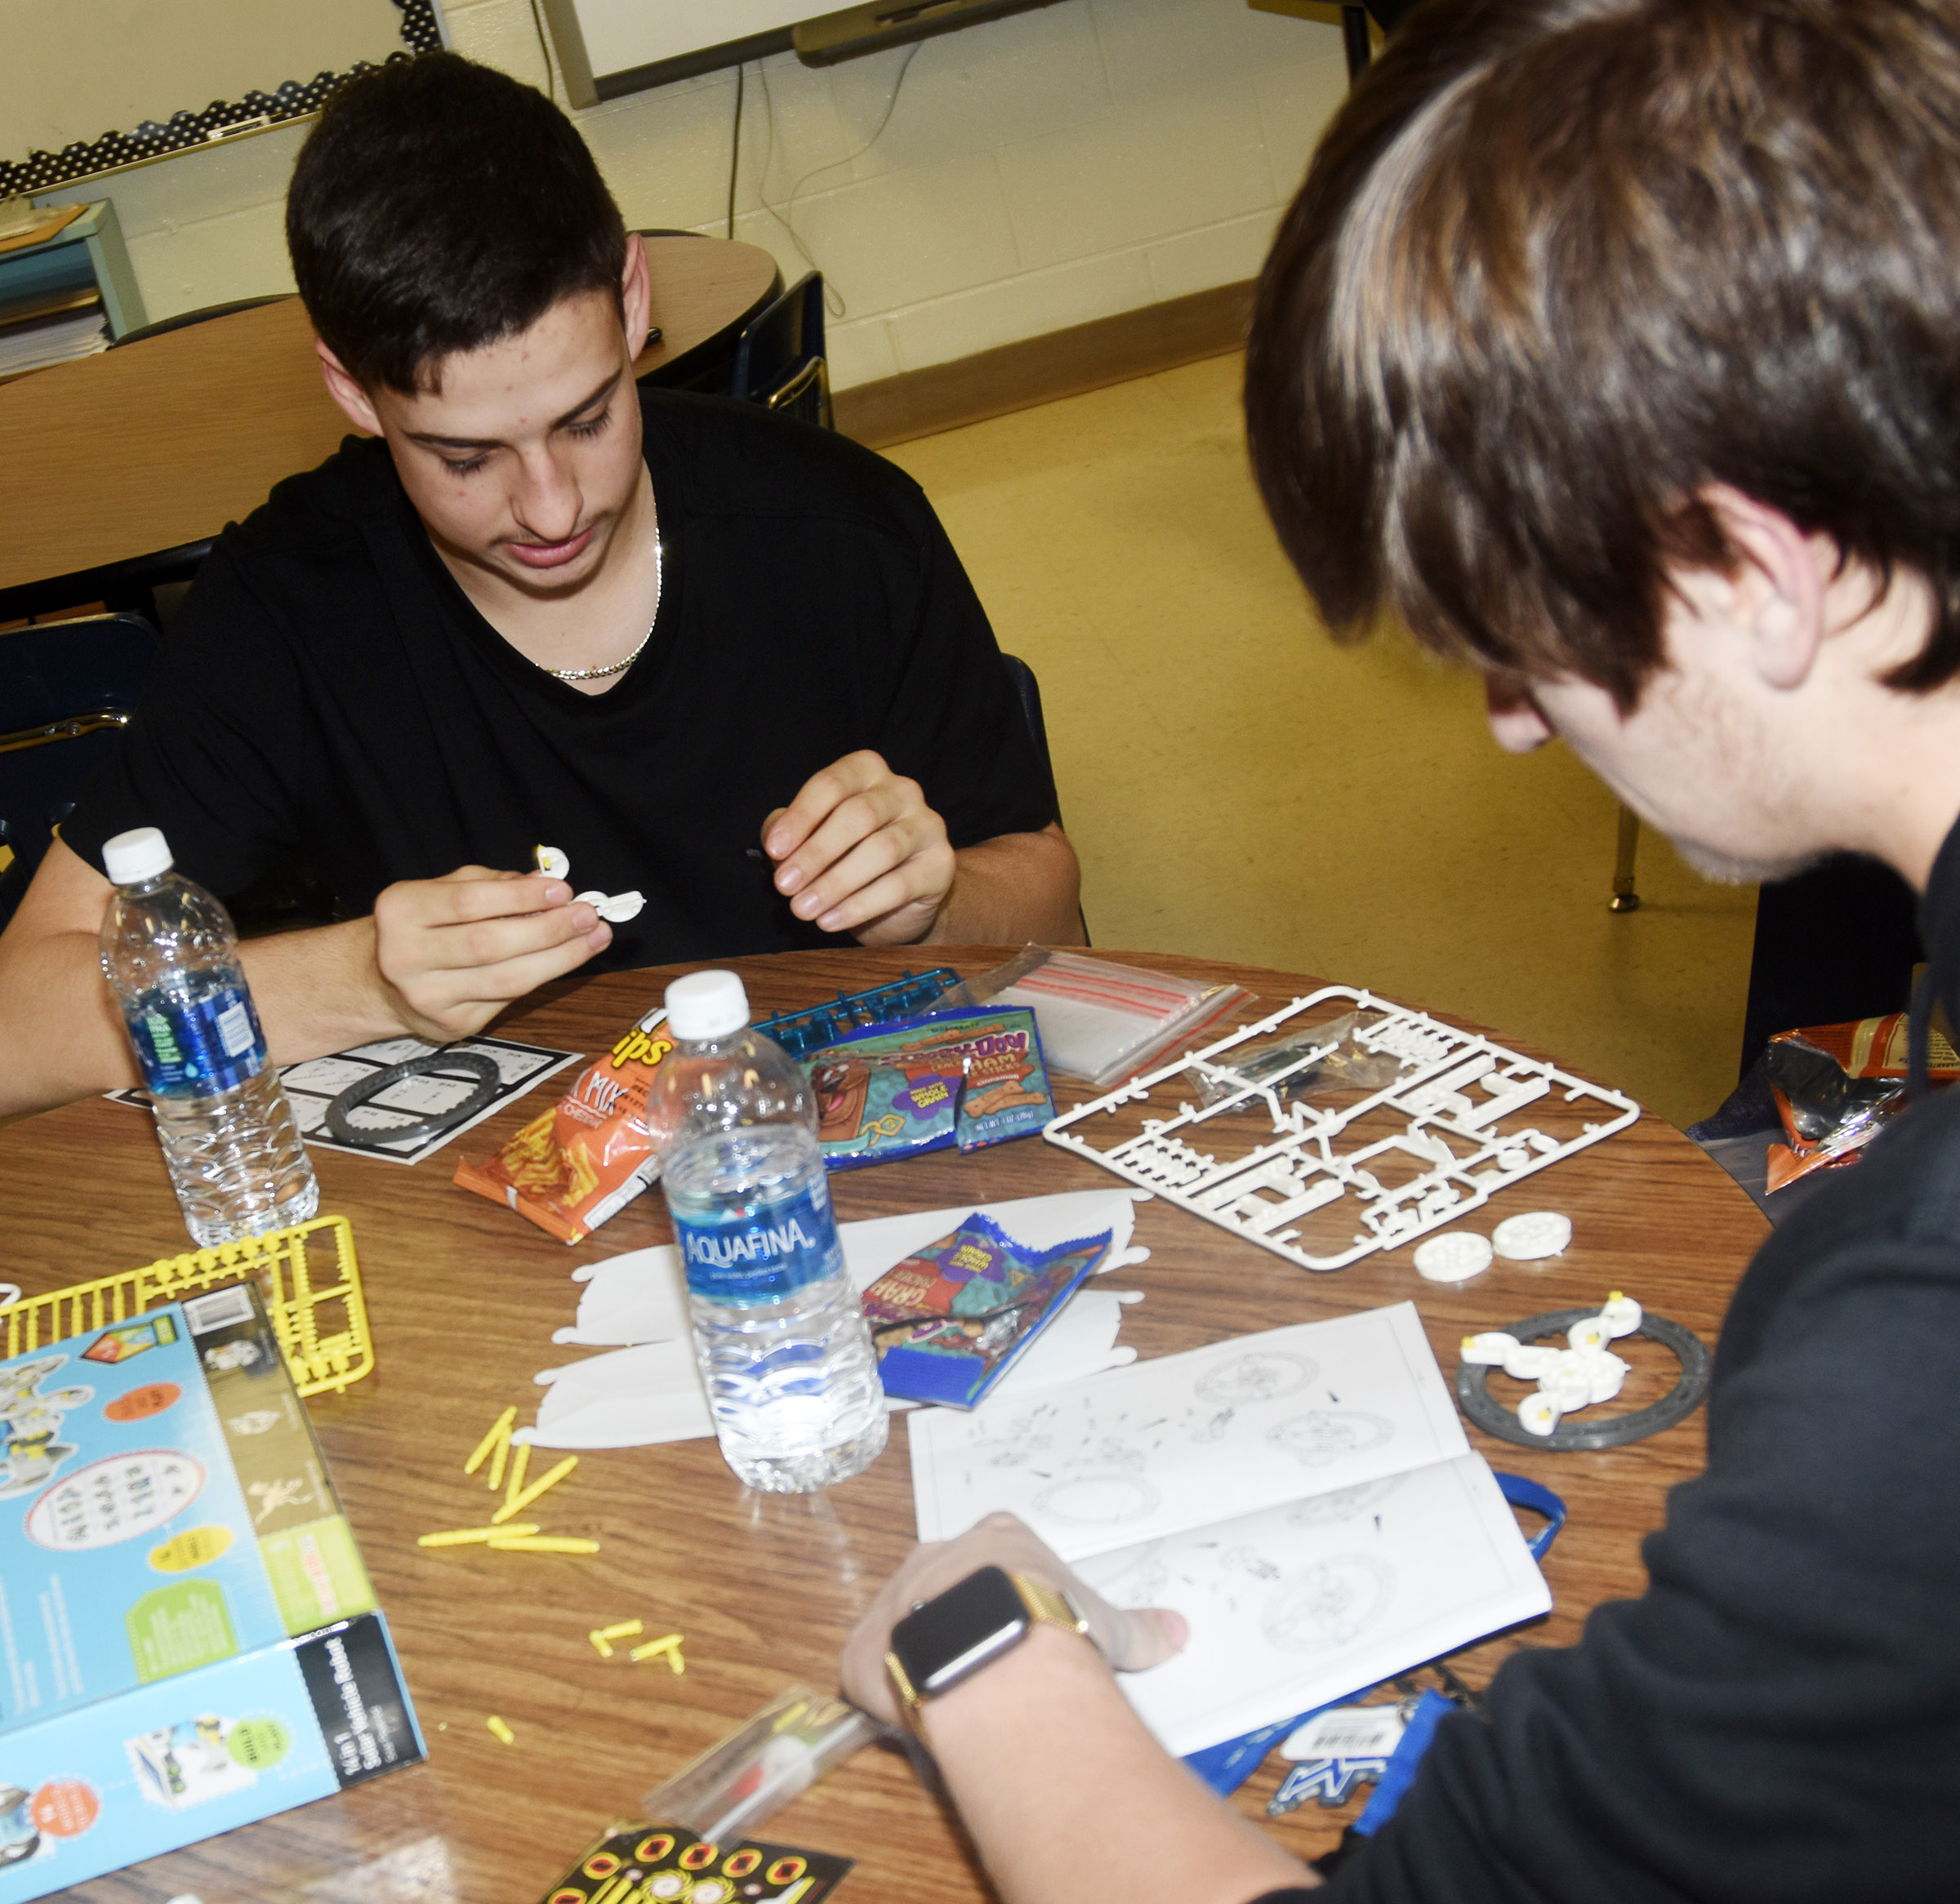 CHS freshman John Orberson, at left, and junior Myles Murrell work together to build a solar vehicle robot.